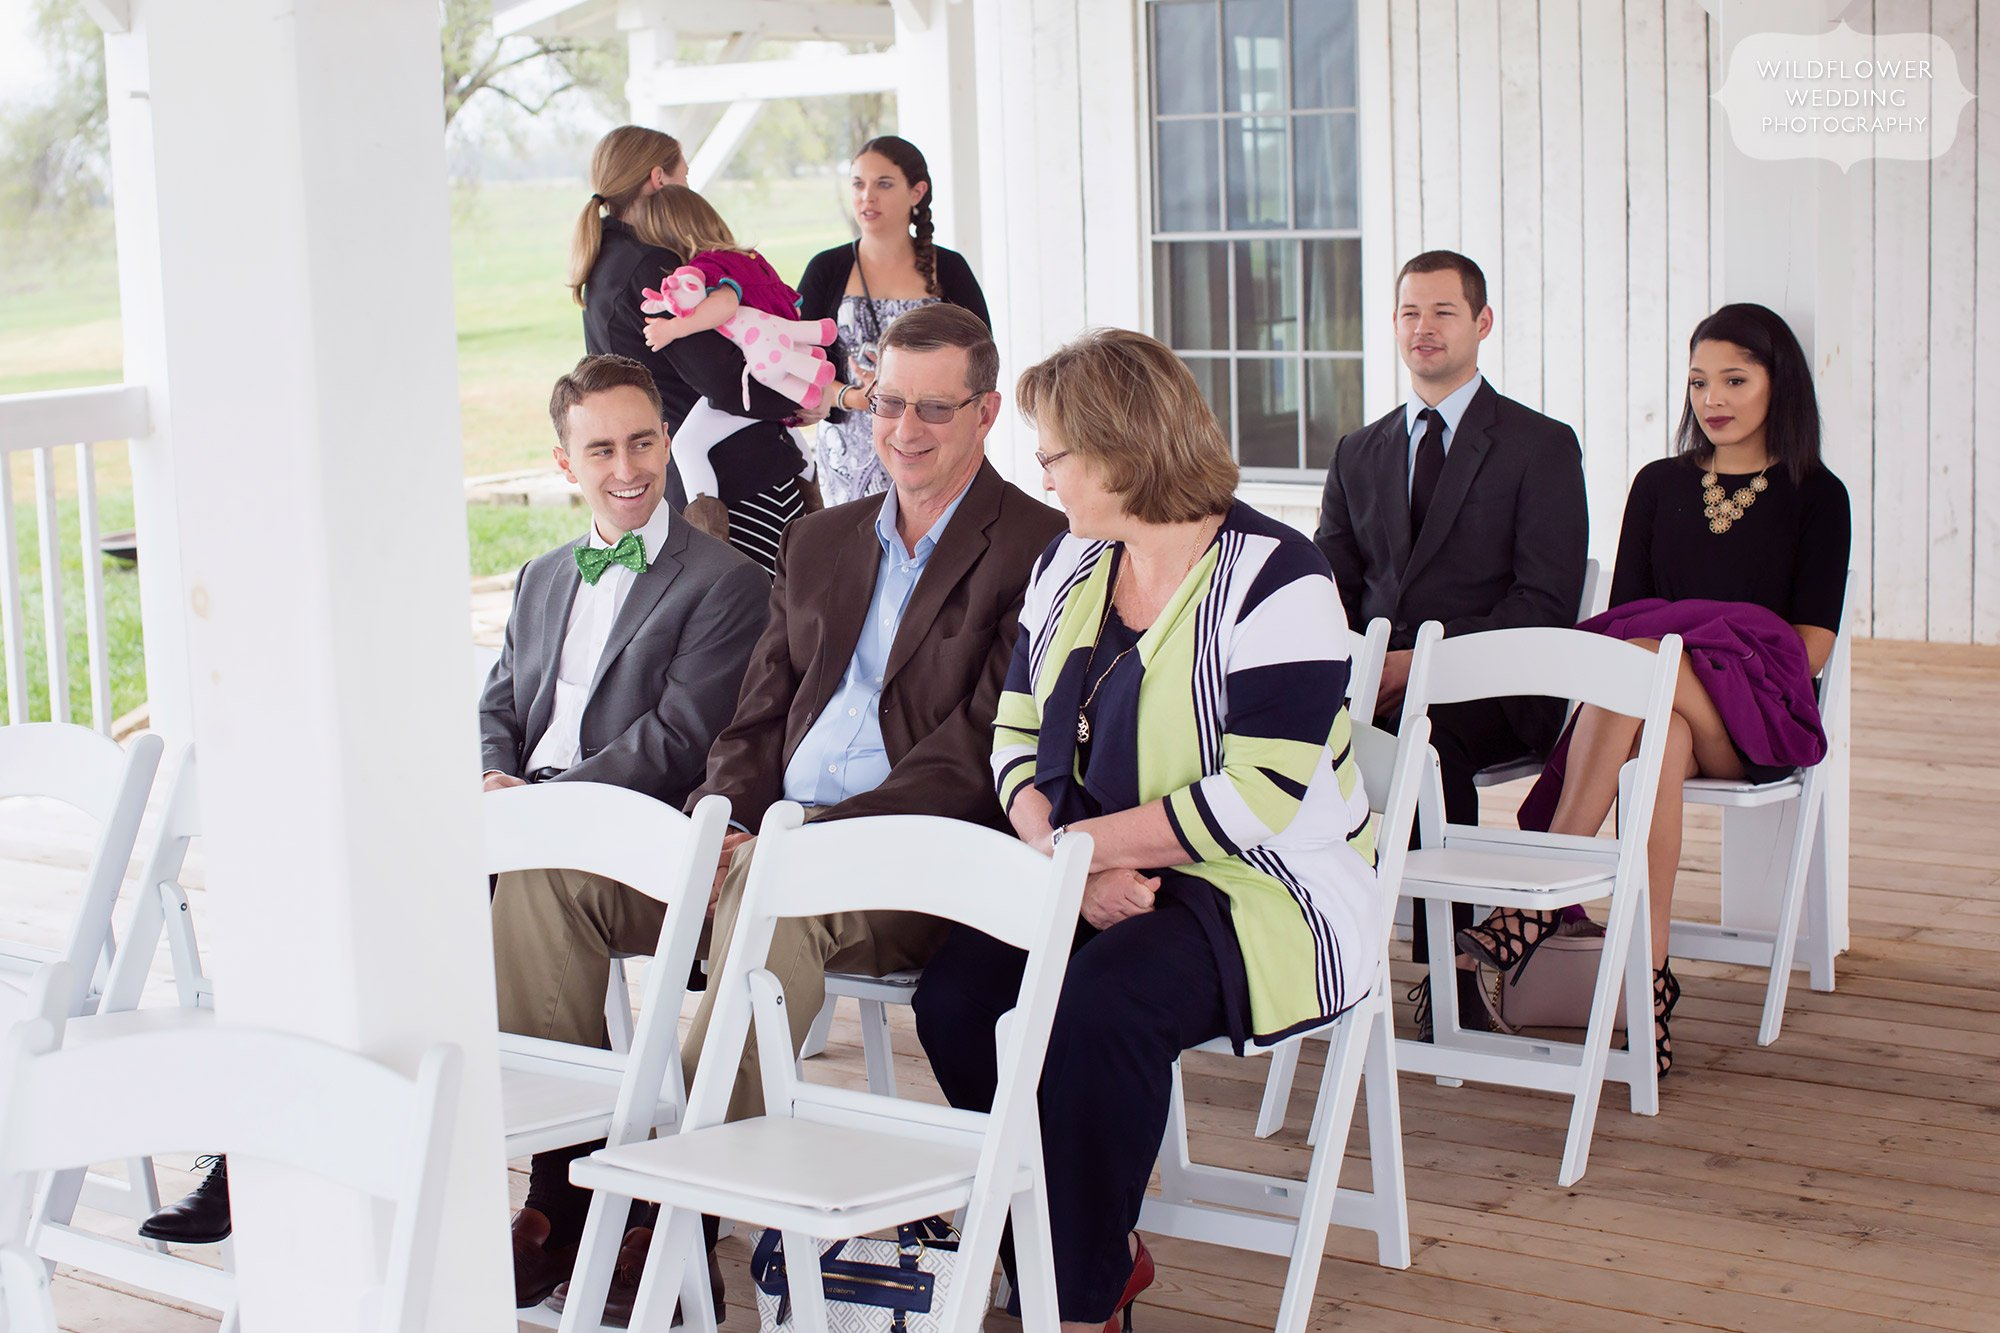 Candid photos of wedding guests before the ceremony in November at the Blue Bell Farm.